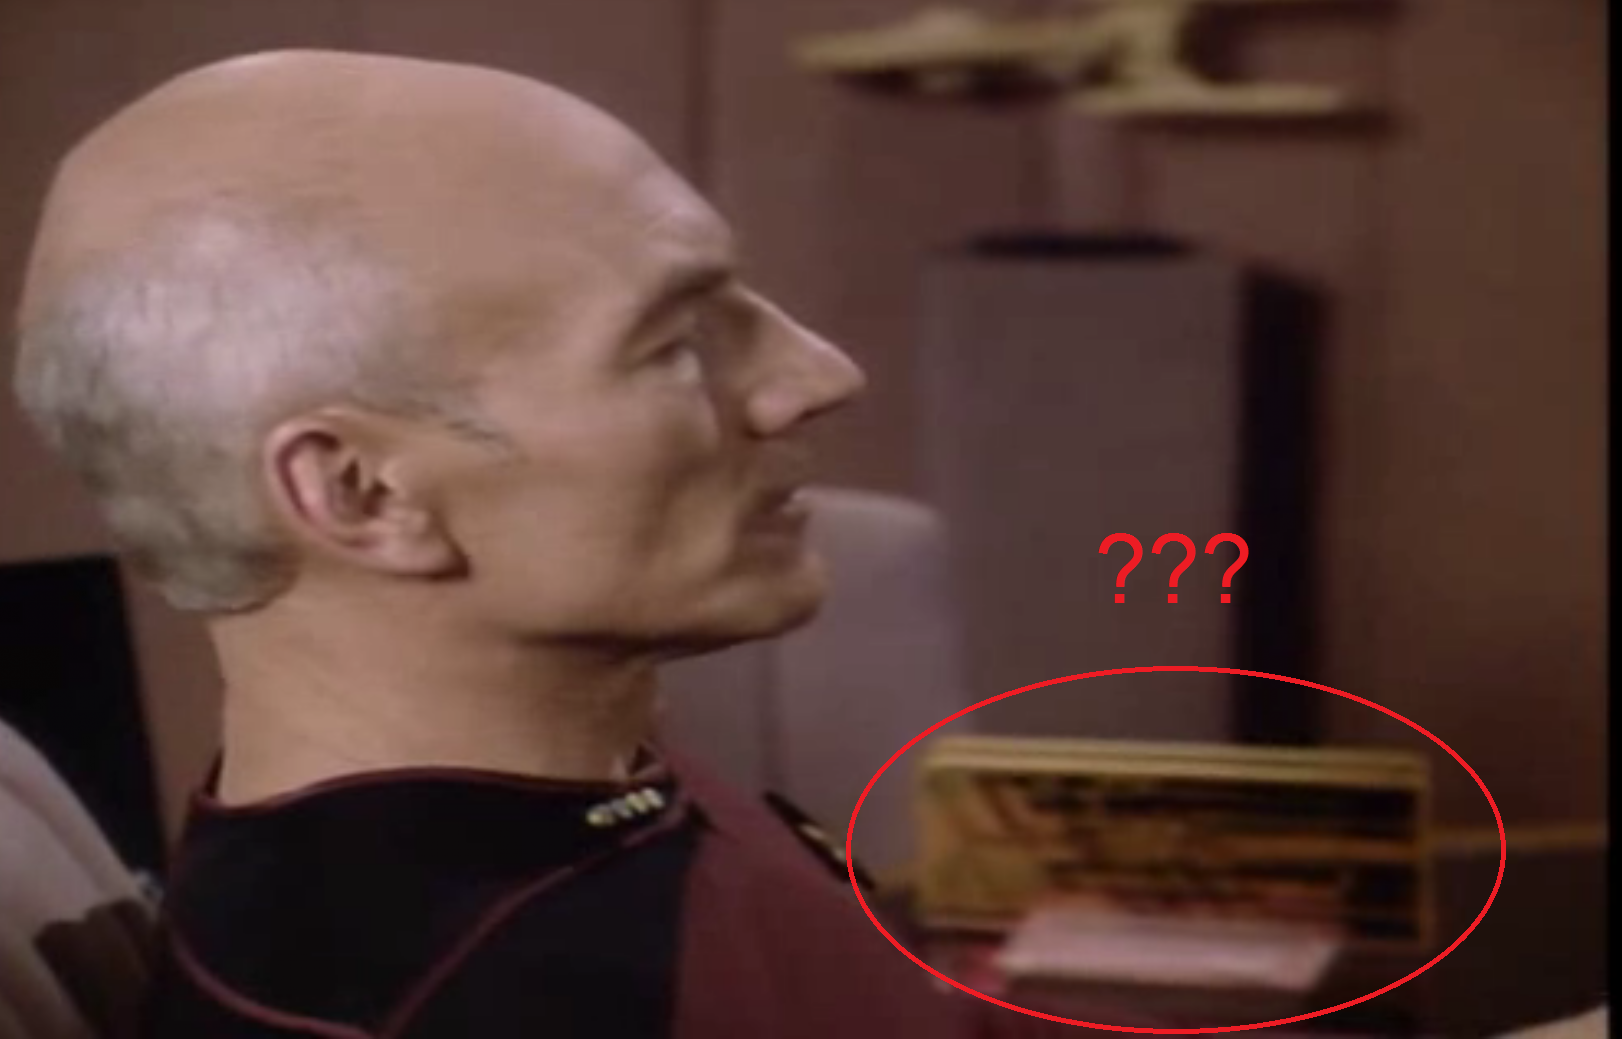 Captain-Picard-Face-Palm-Happy-Toothbrush | Awesome McLombo | Flickr